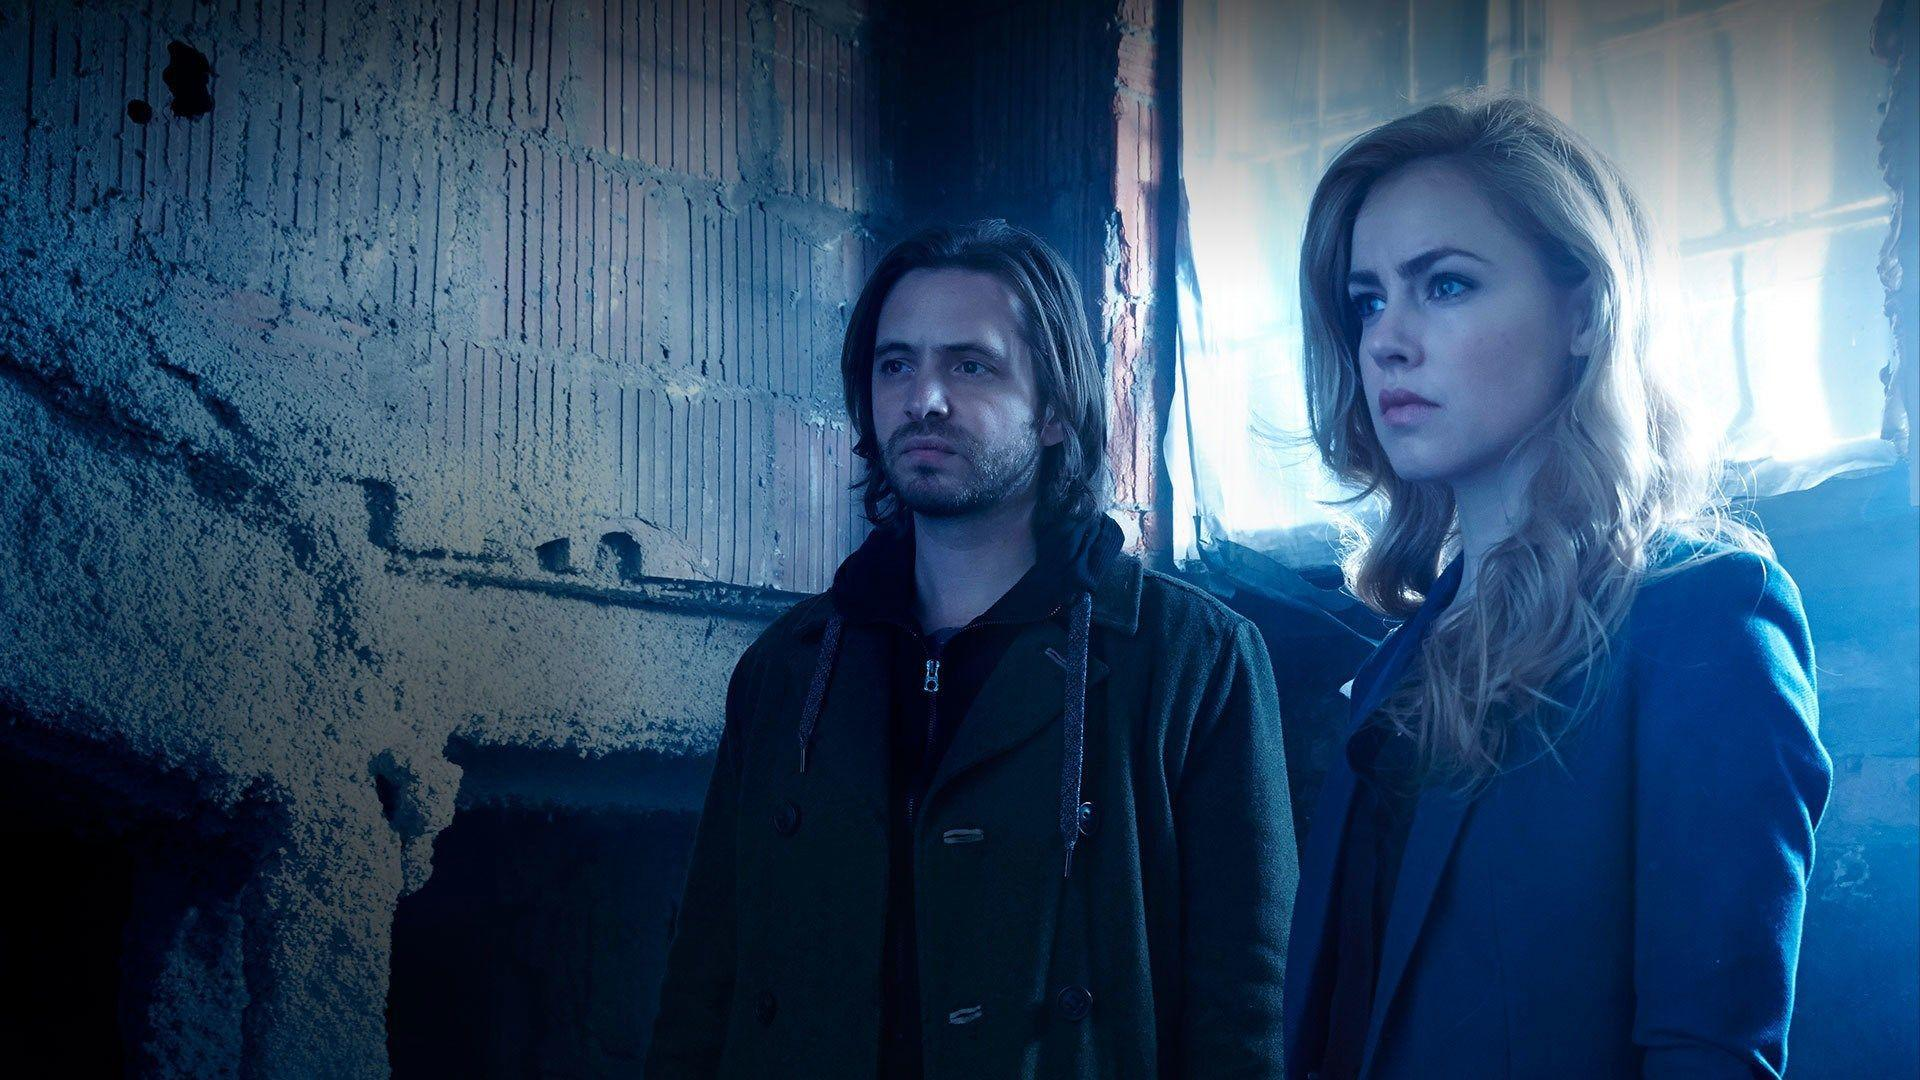 12 monkeys wallpapers and backgrounds